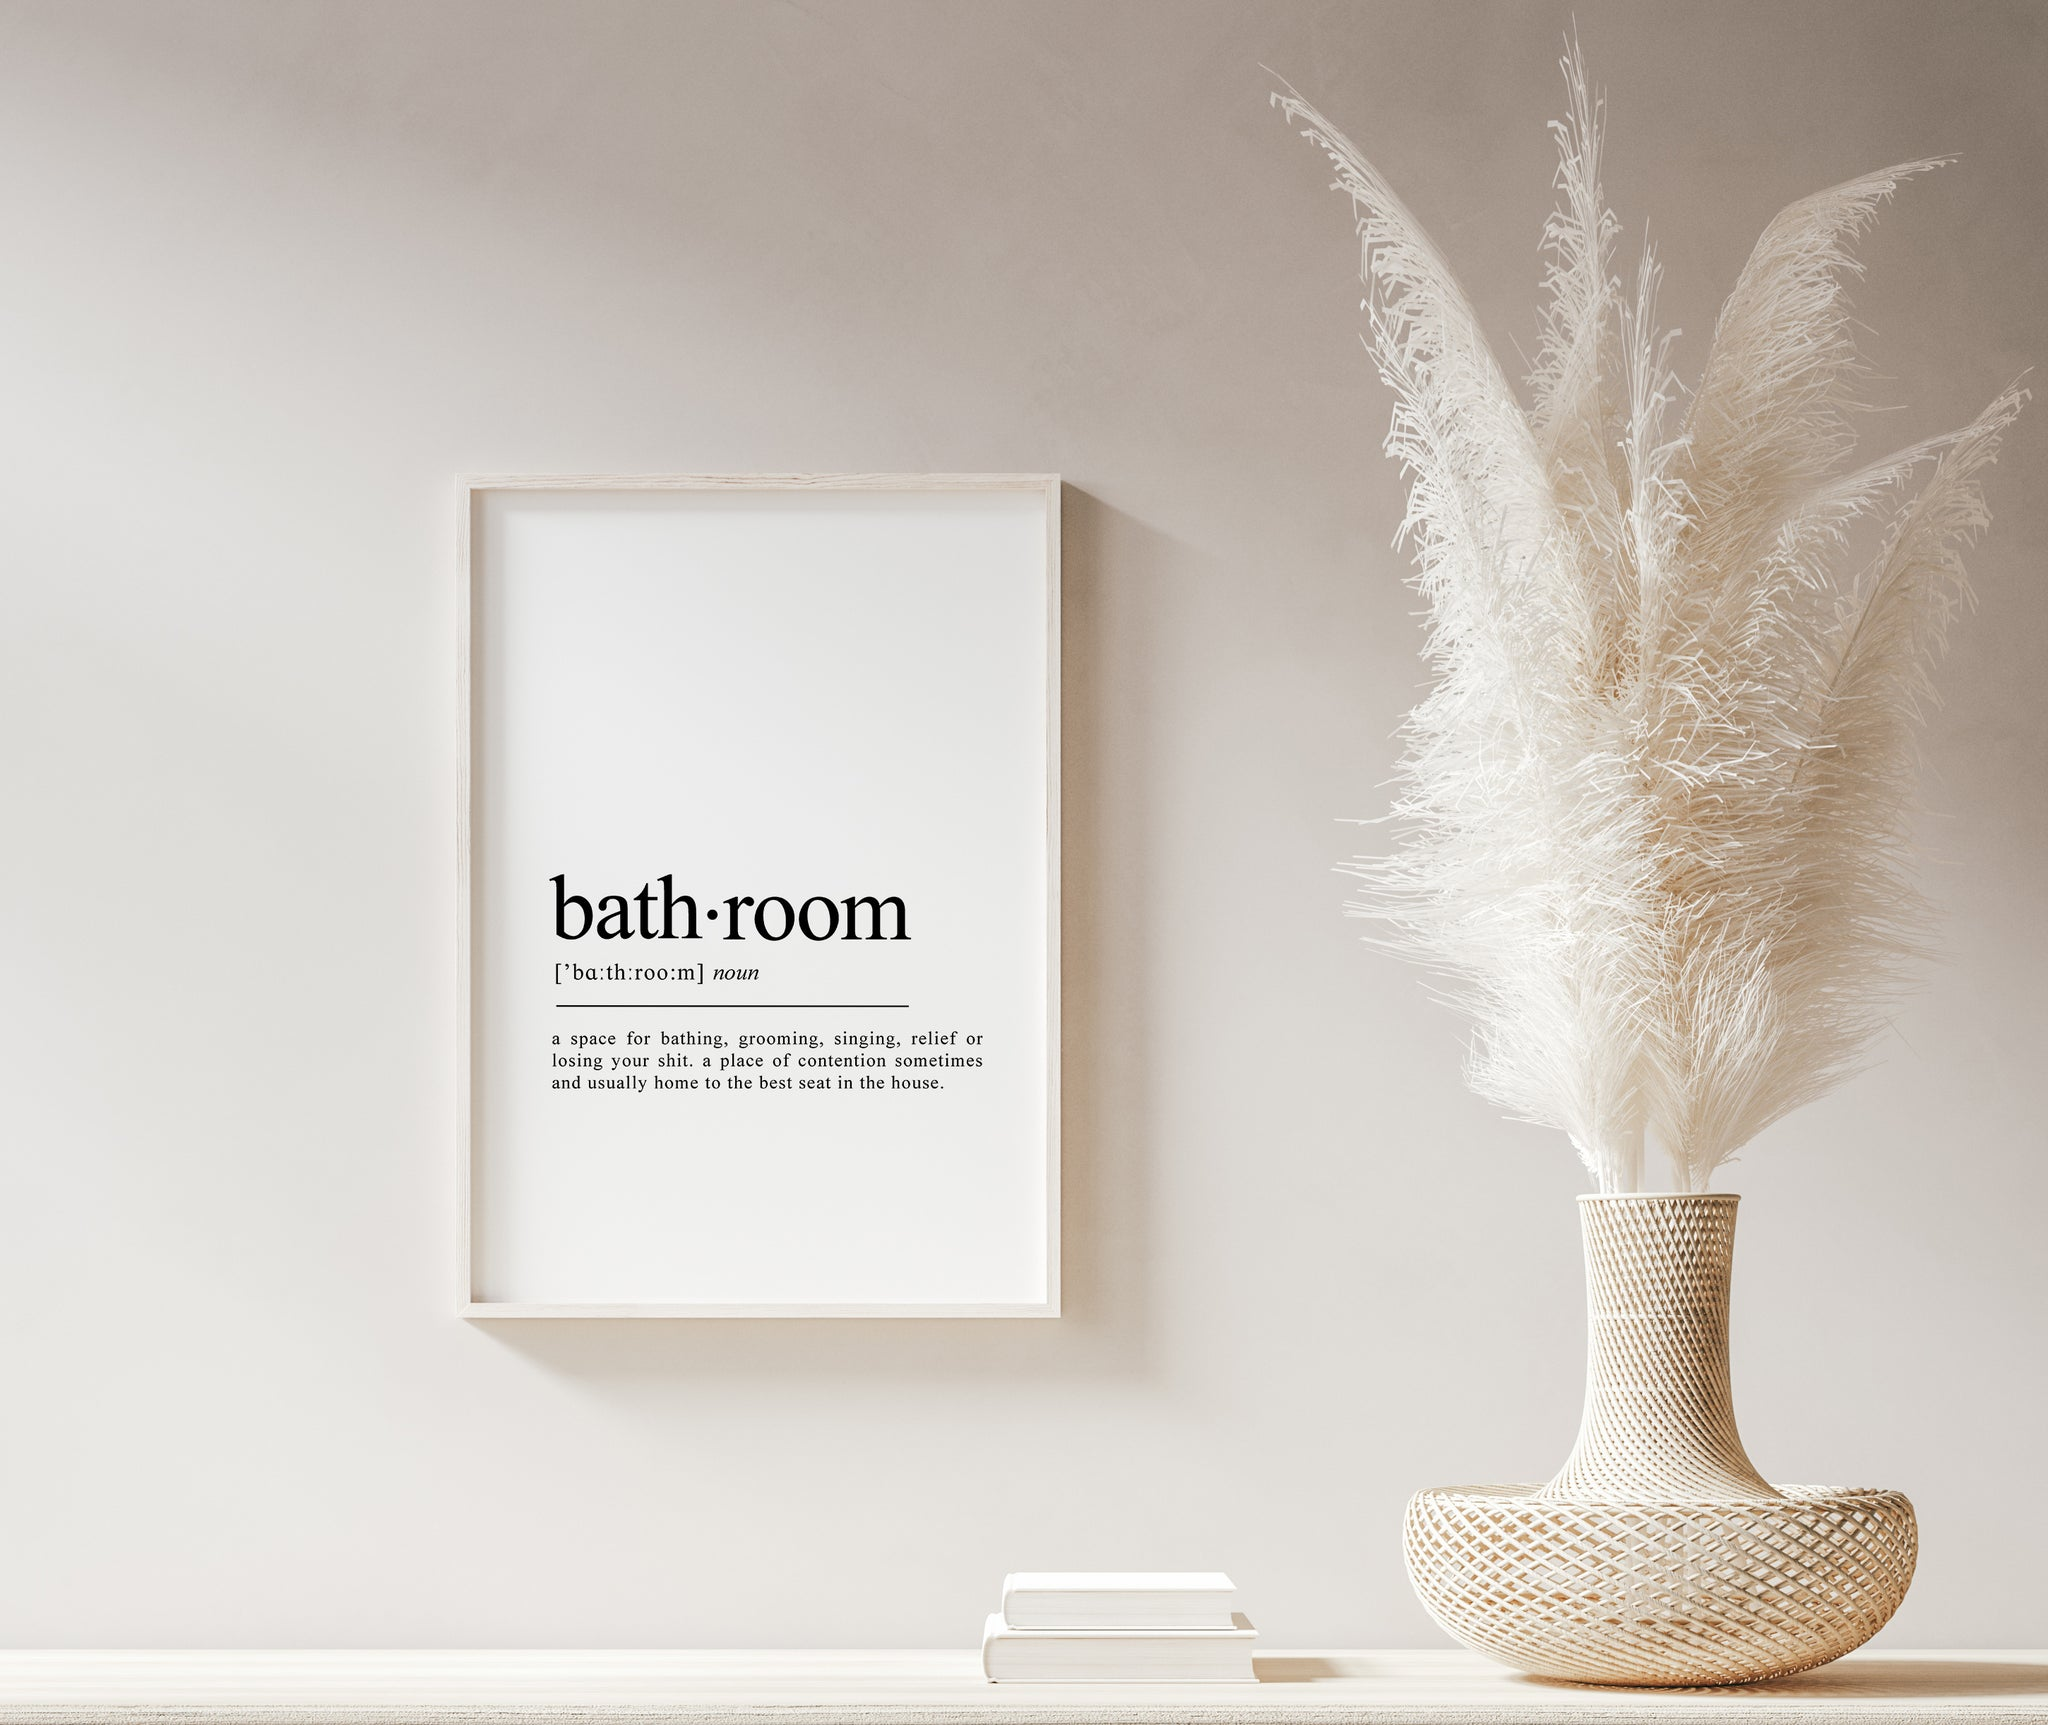 Bathroom Definition Word Wall Art | Bathroom Room Print | Friend Gift | New Home